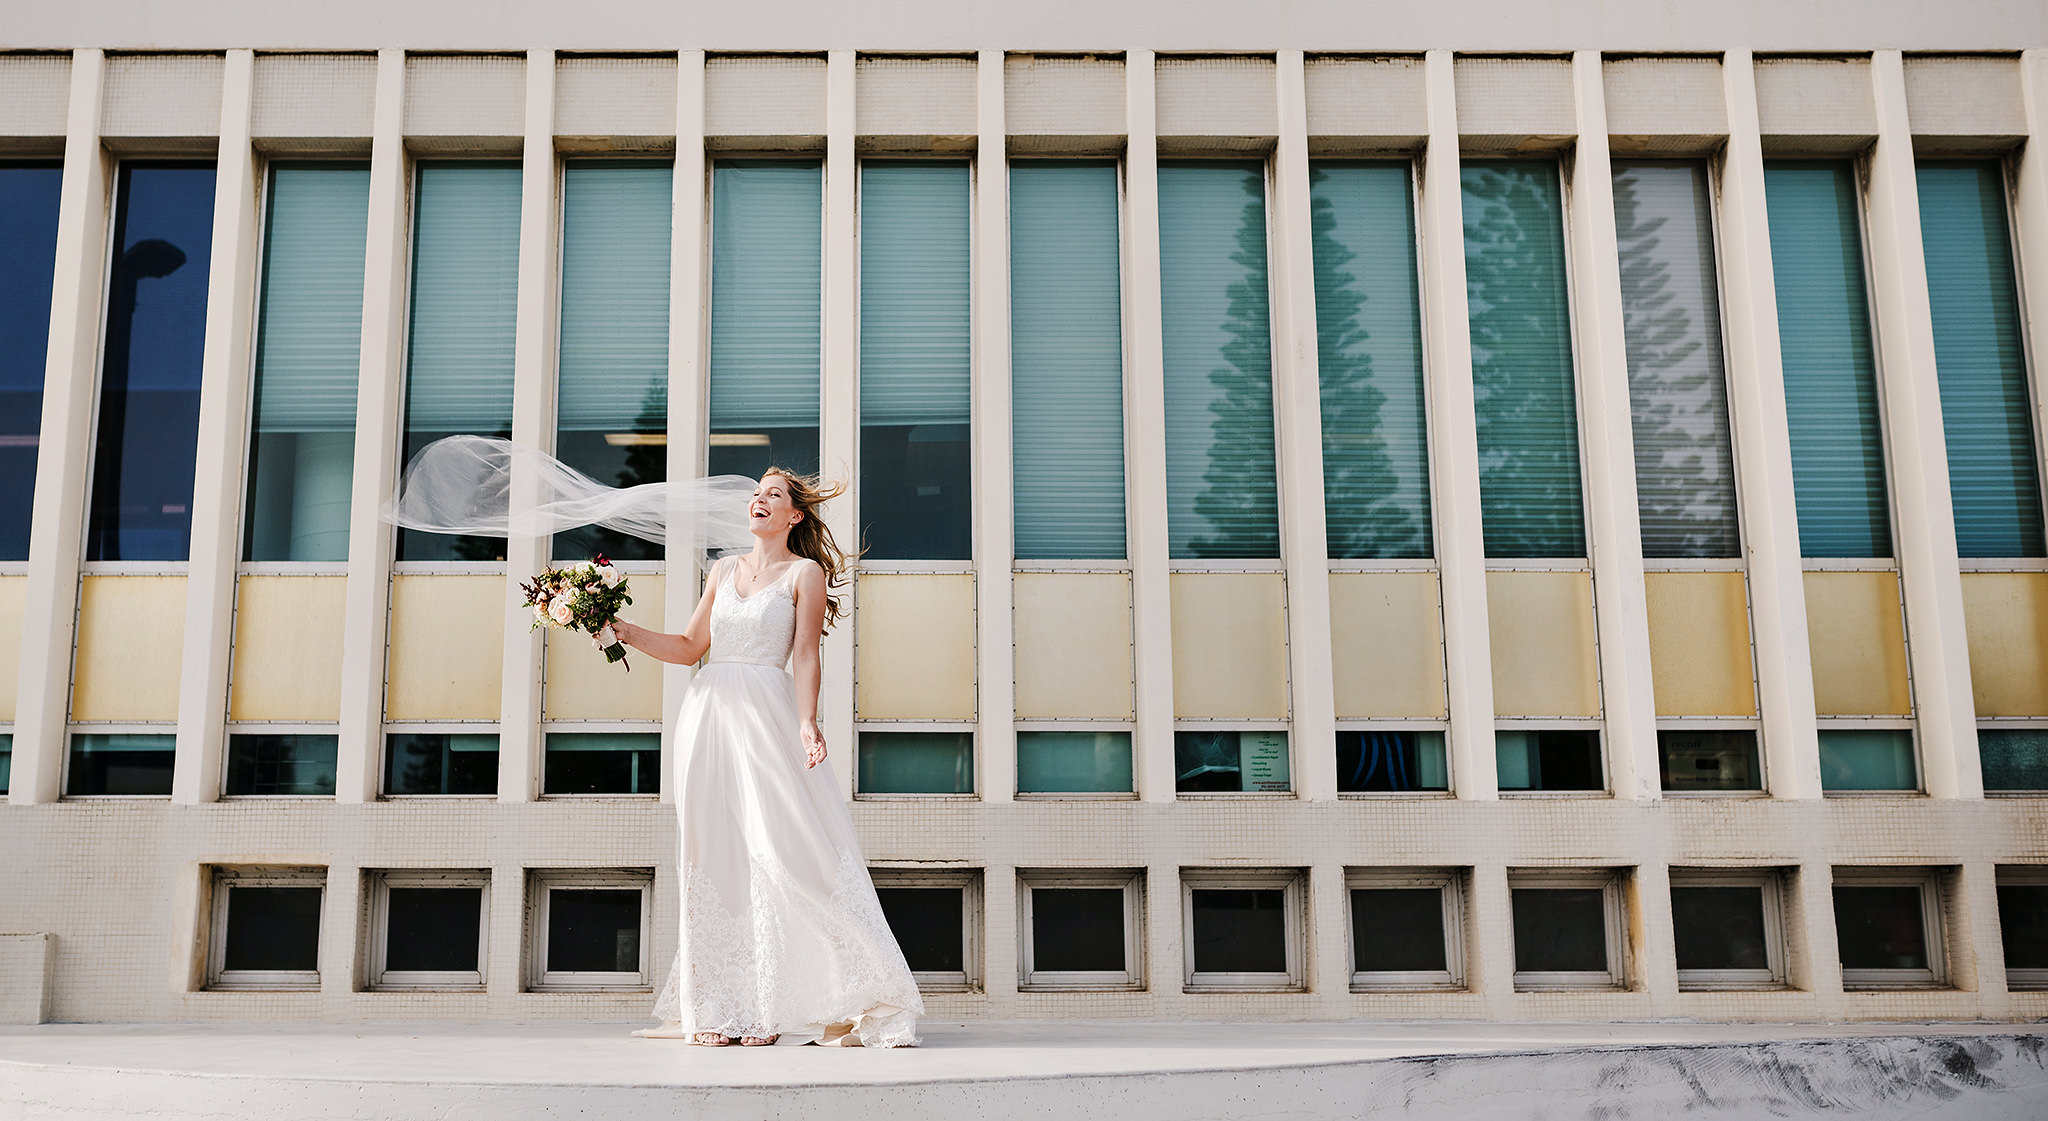 17 Bride veil flowing in the breeze architecture perth wedding.JPG